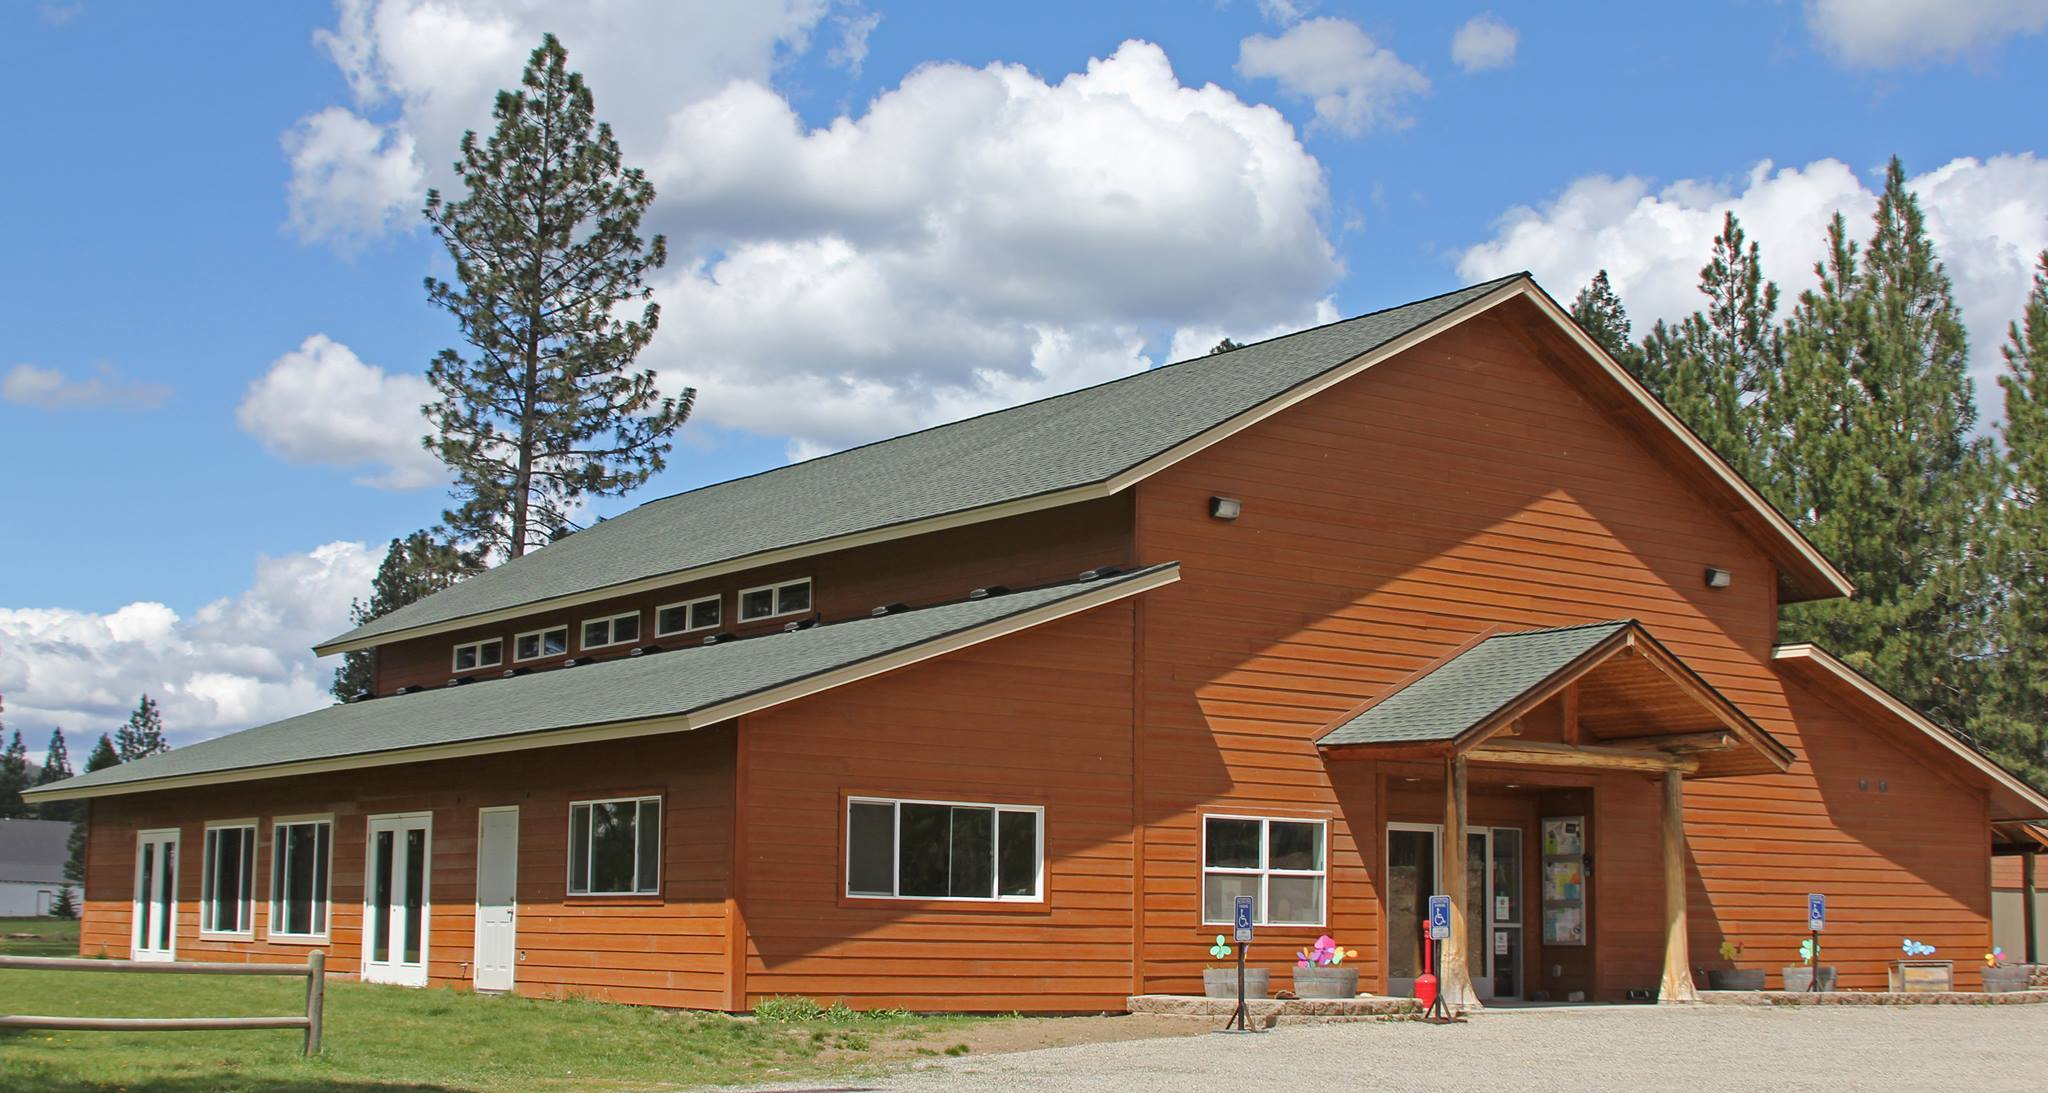 Blanchard Idaho Community Center for Rent